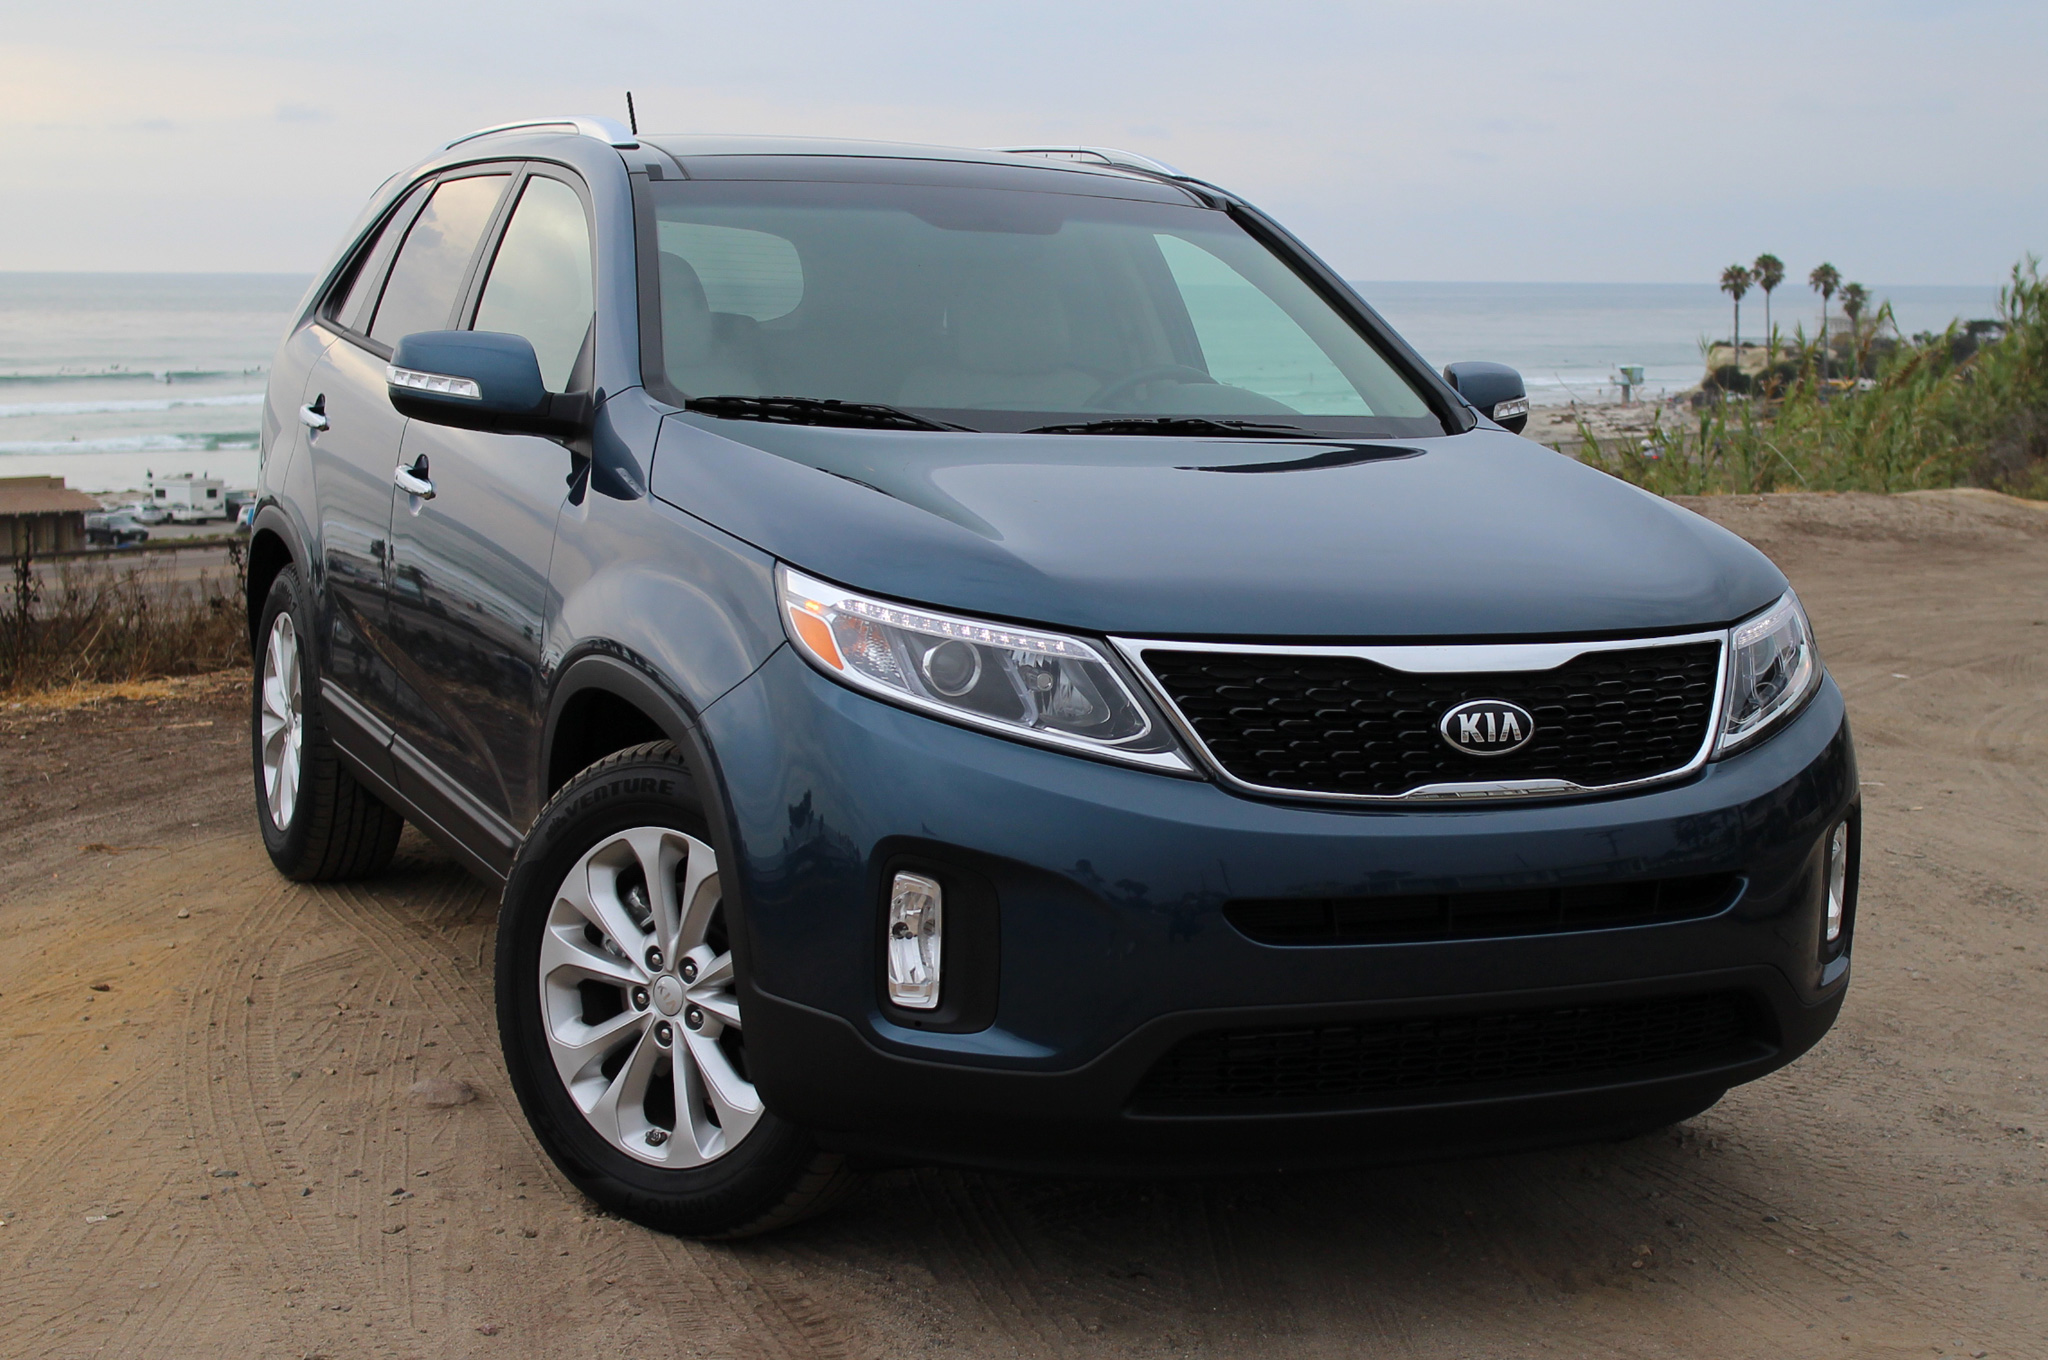 Kia Sorento: Voice Command List